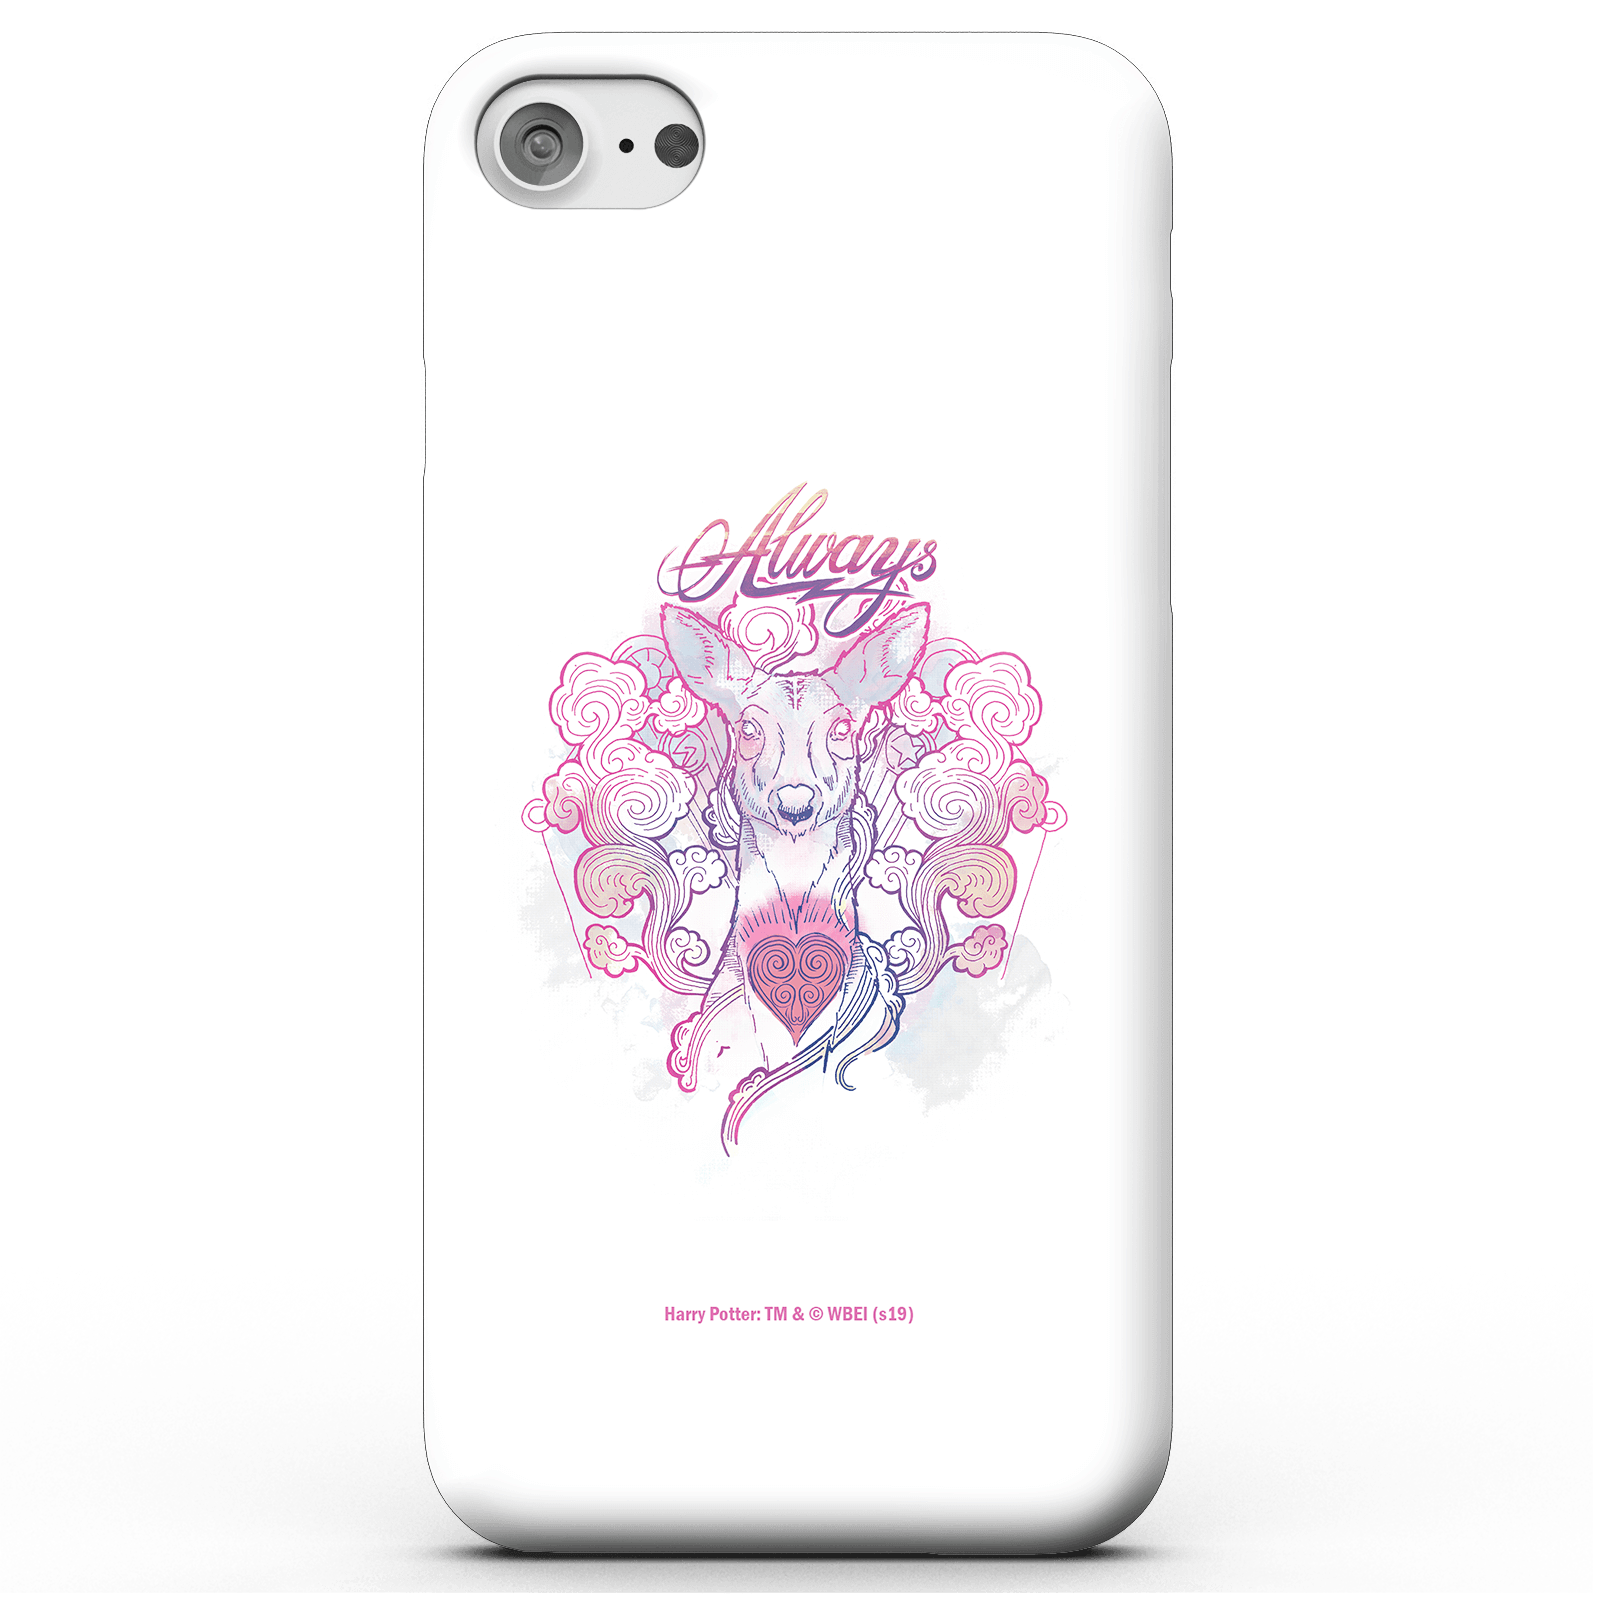 Harry Potter Always Phone Case for iPhone and Android - iPhone 6 Plus - Carcasa rígida - Mate de Harry Potter